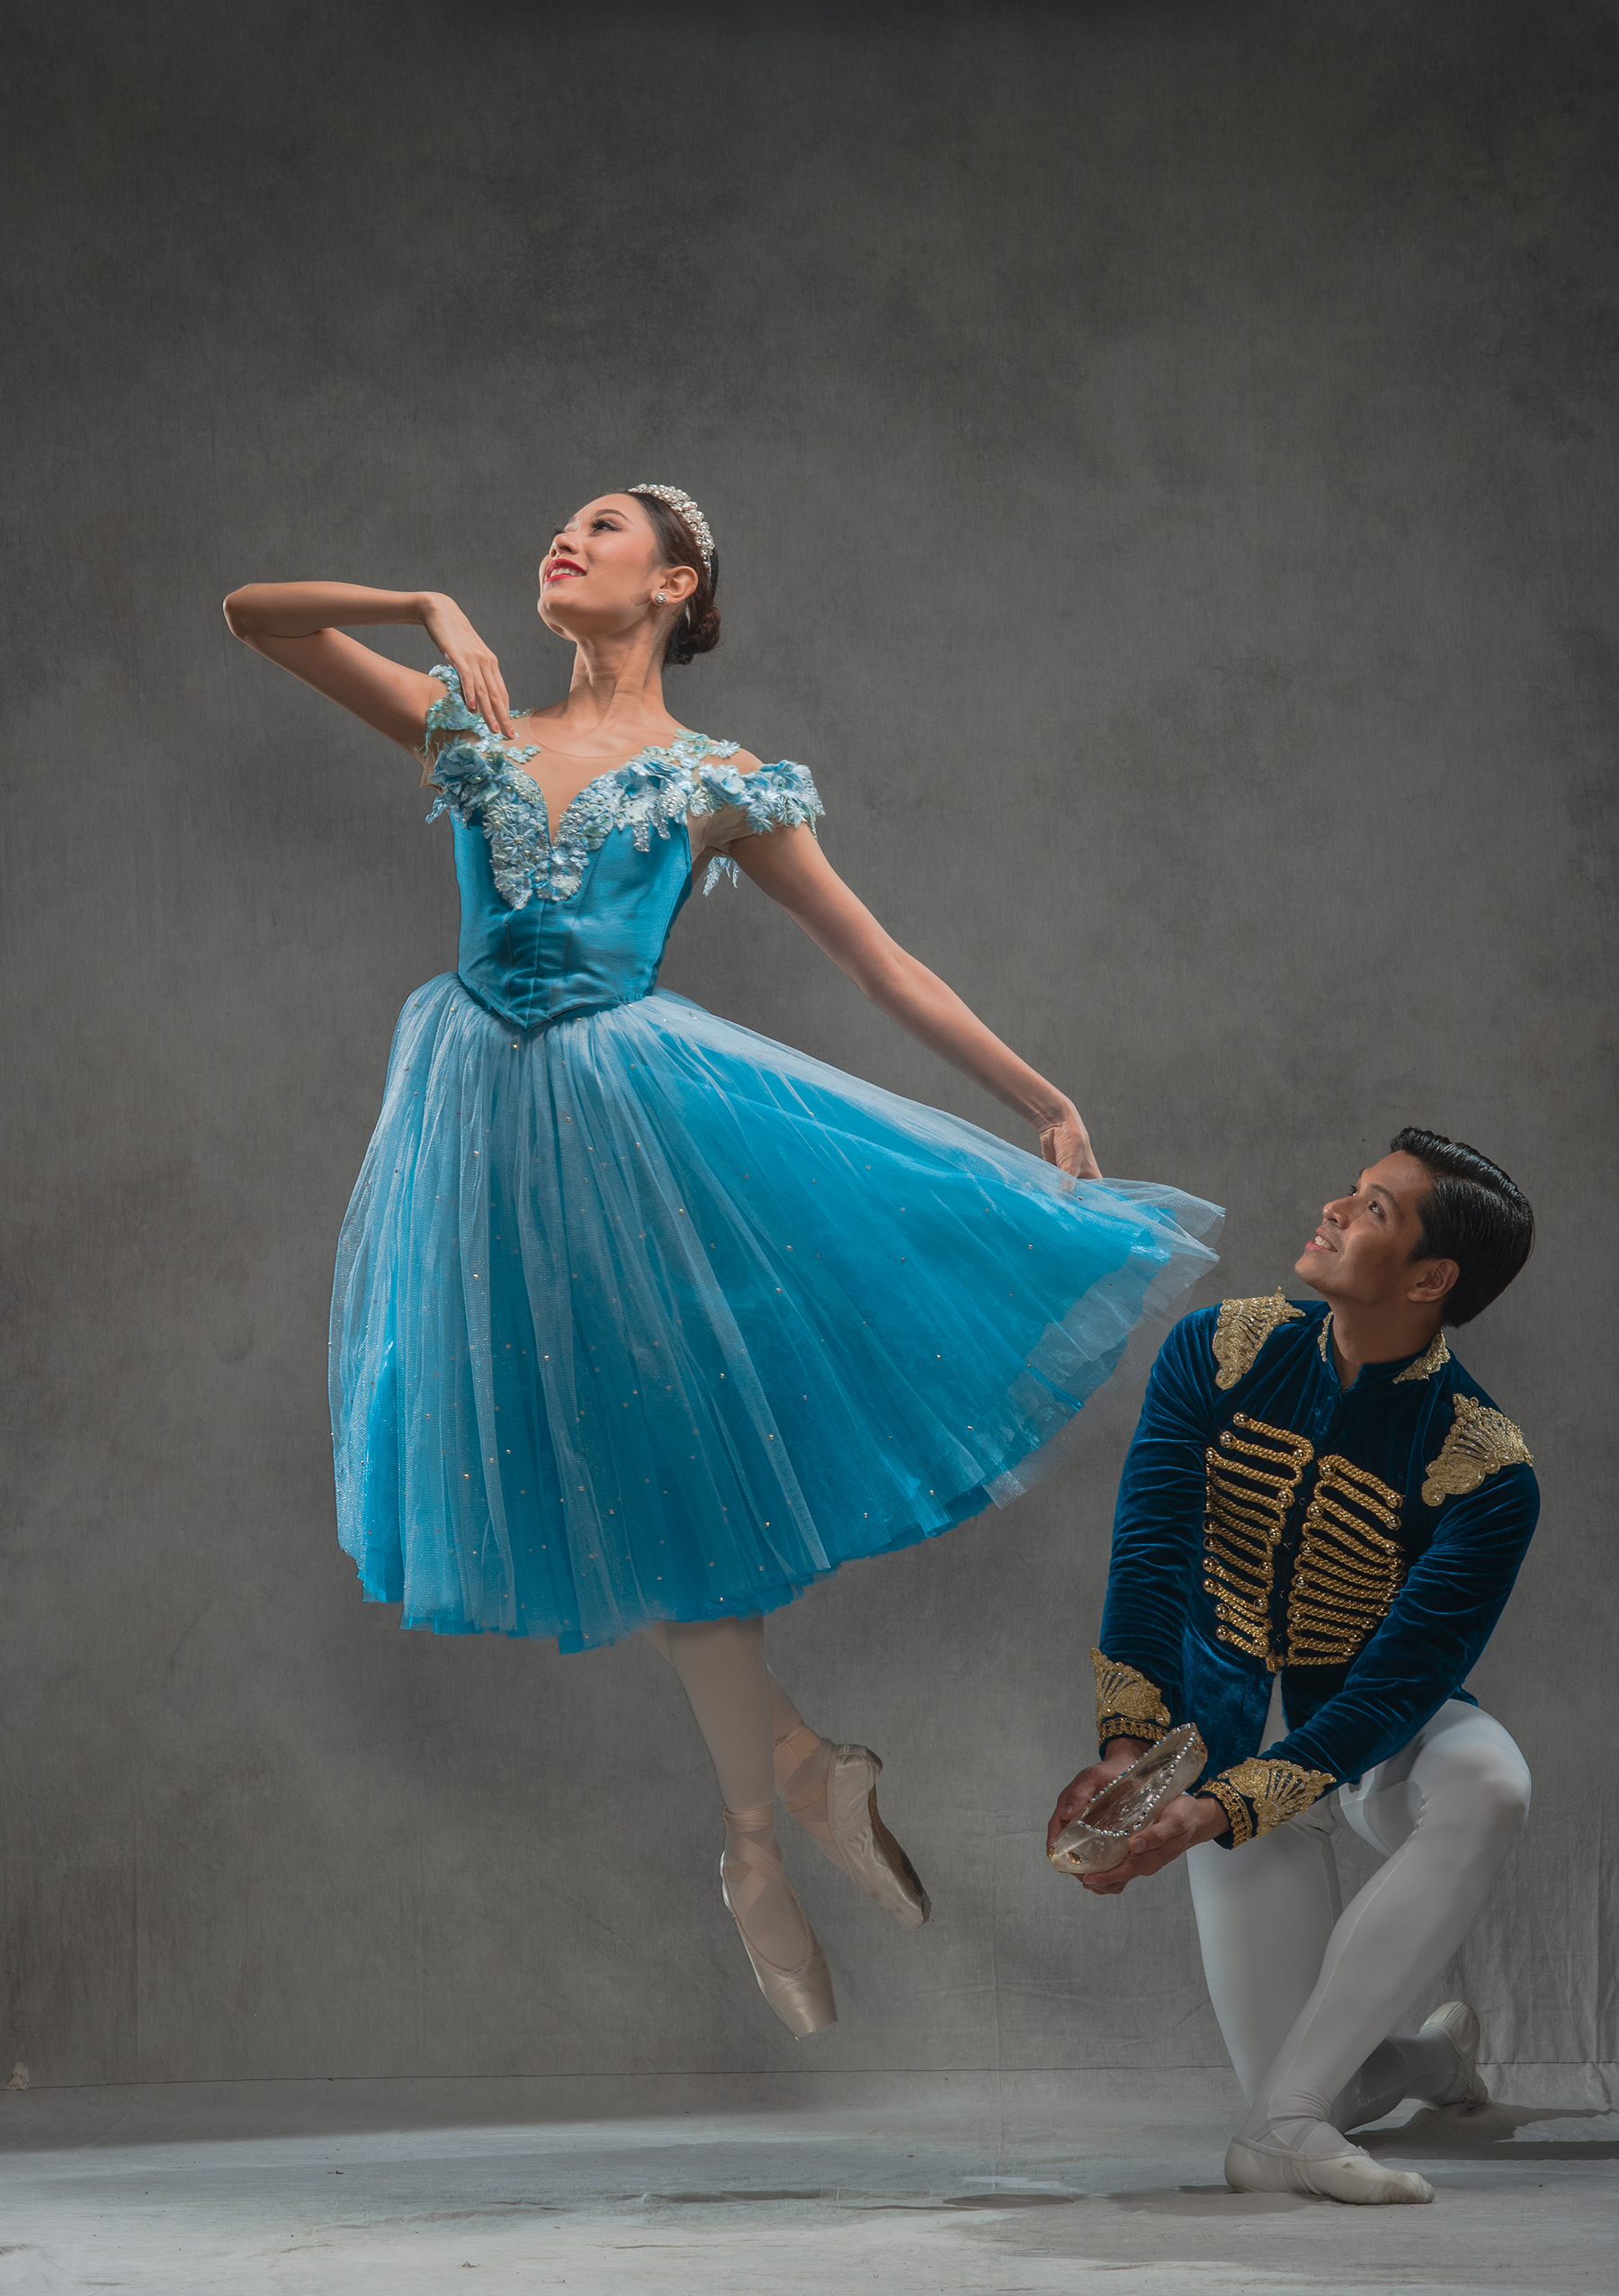 Abigail Oliveiro steps into Cinderella's shoes once more, still with boyfriend Mark Sumaylo as her Prince Charming. Photo by Jojit Lorenzo